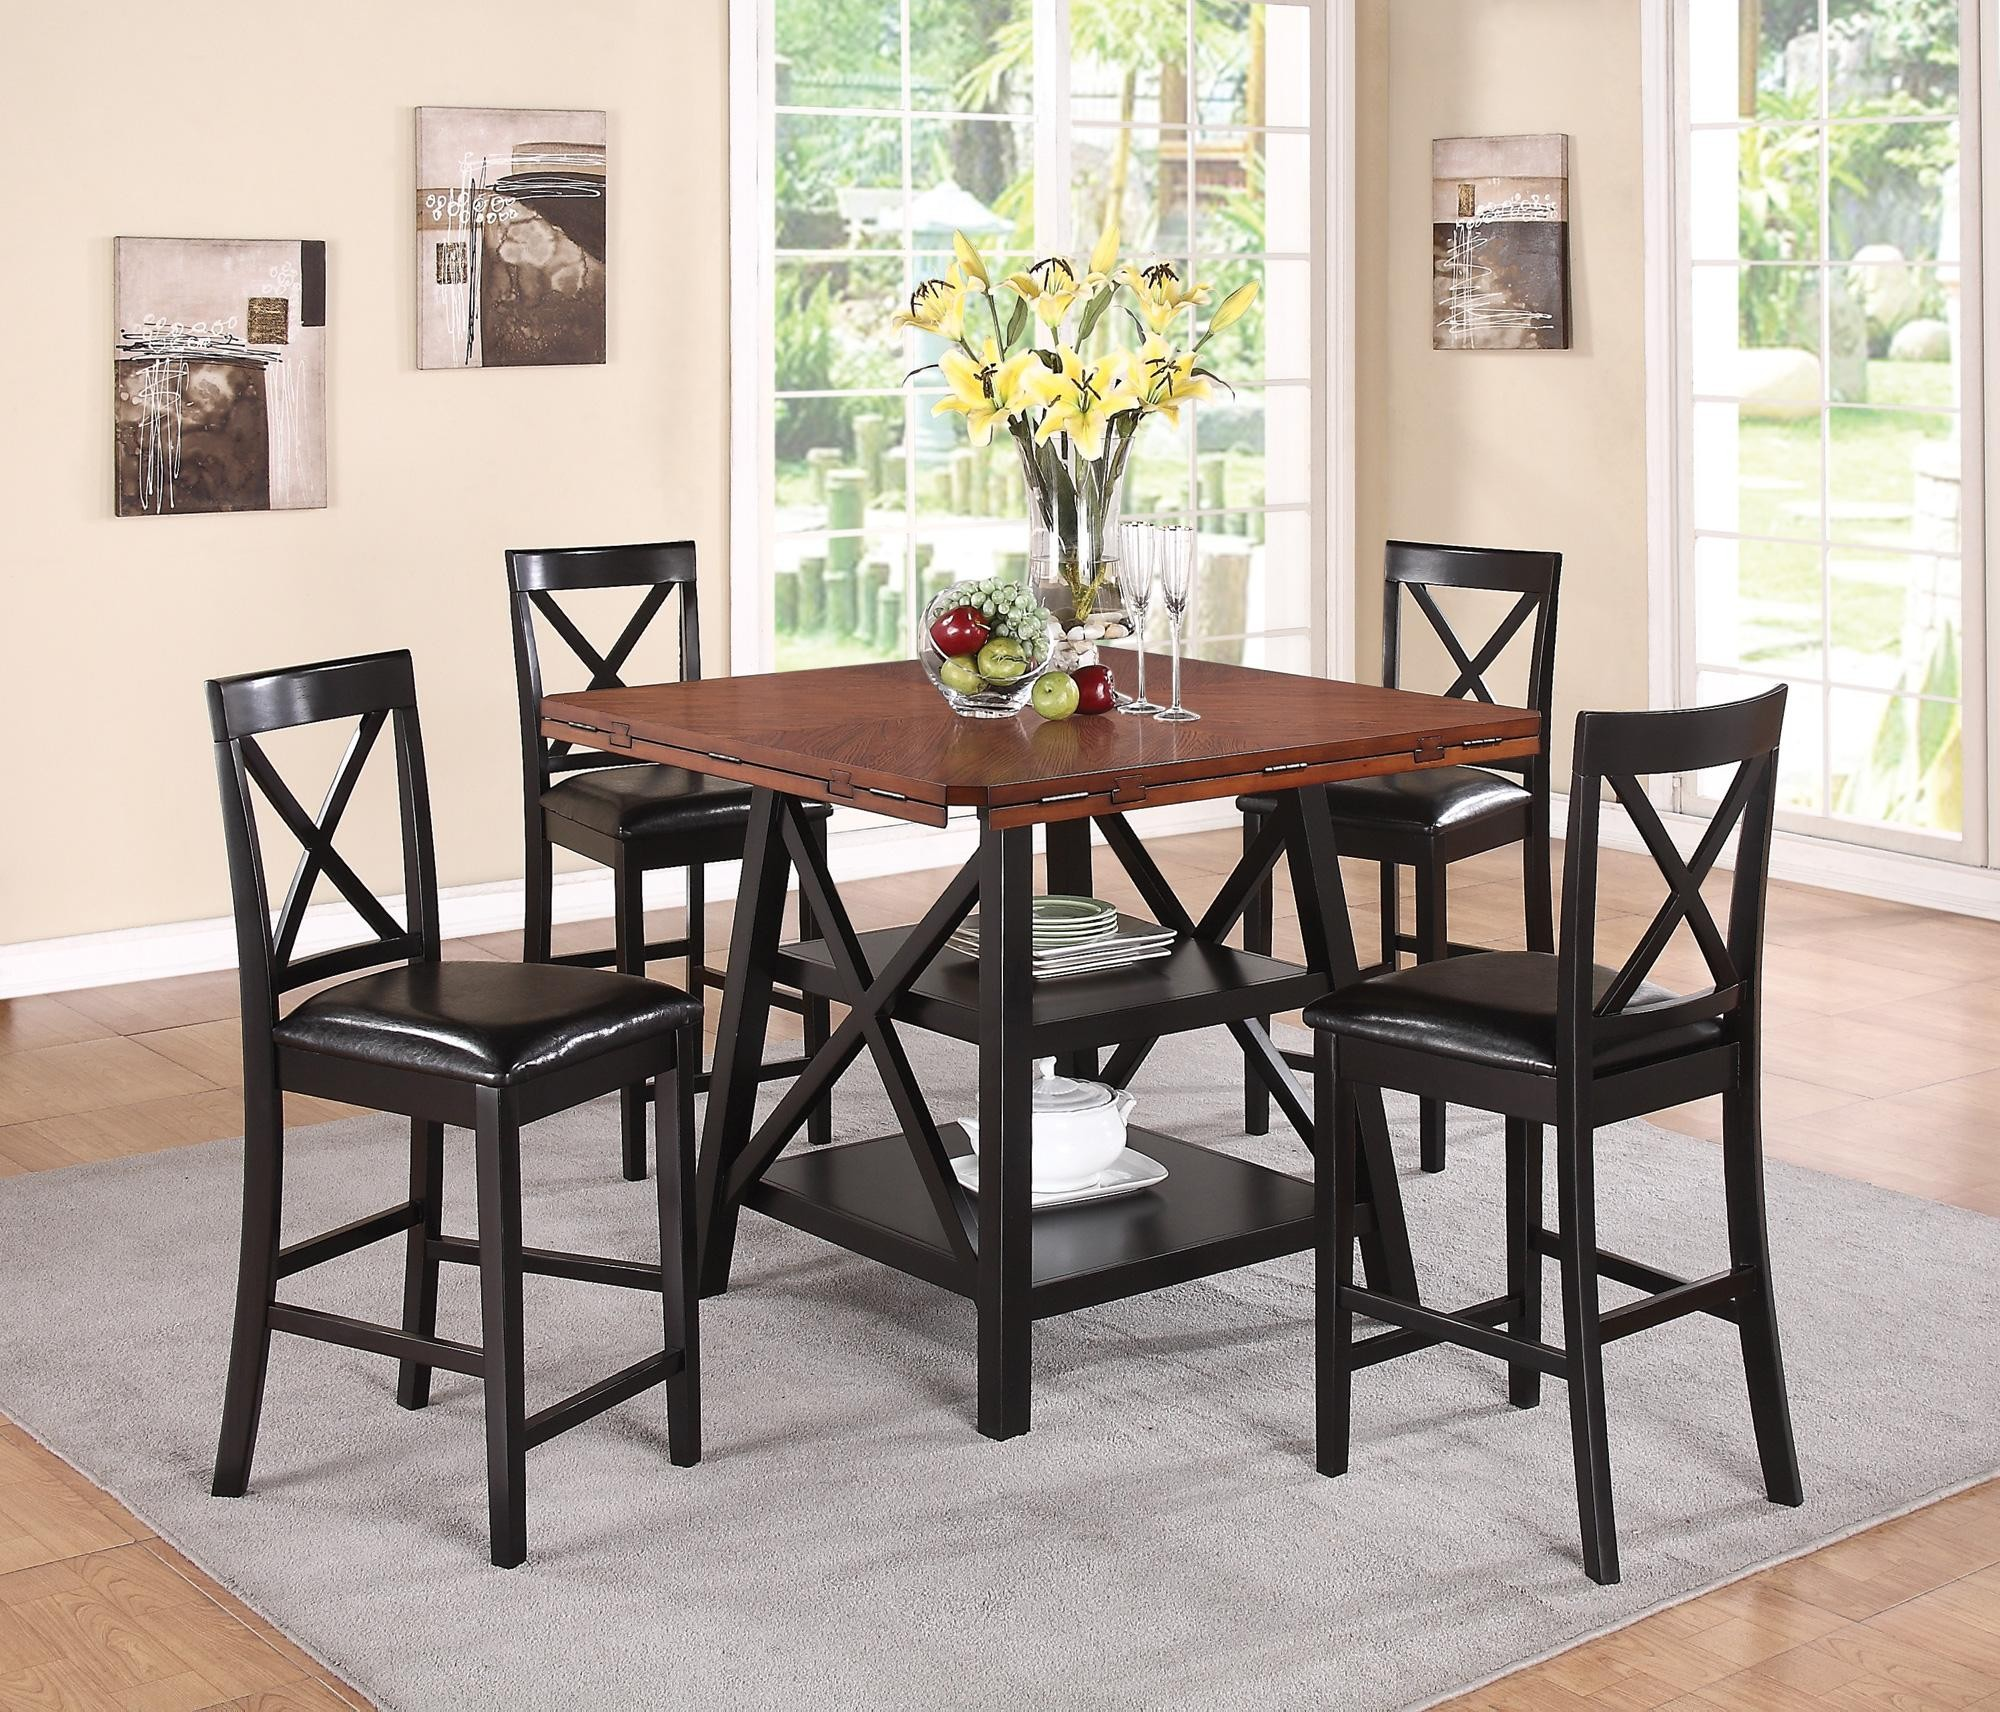 Austin round counter height dining room set 104178 for Counter height dining set